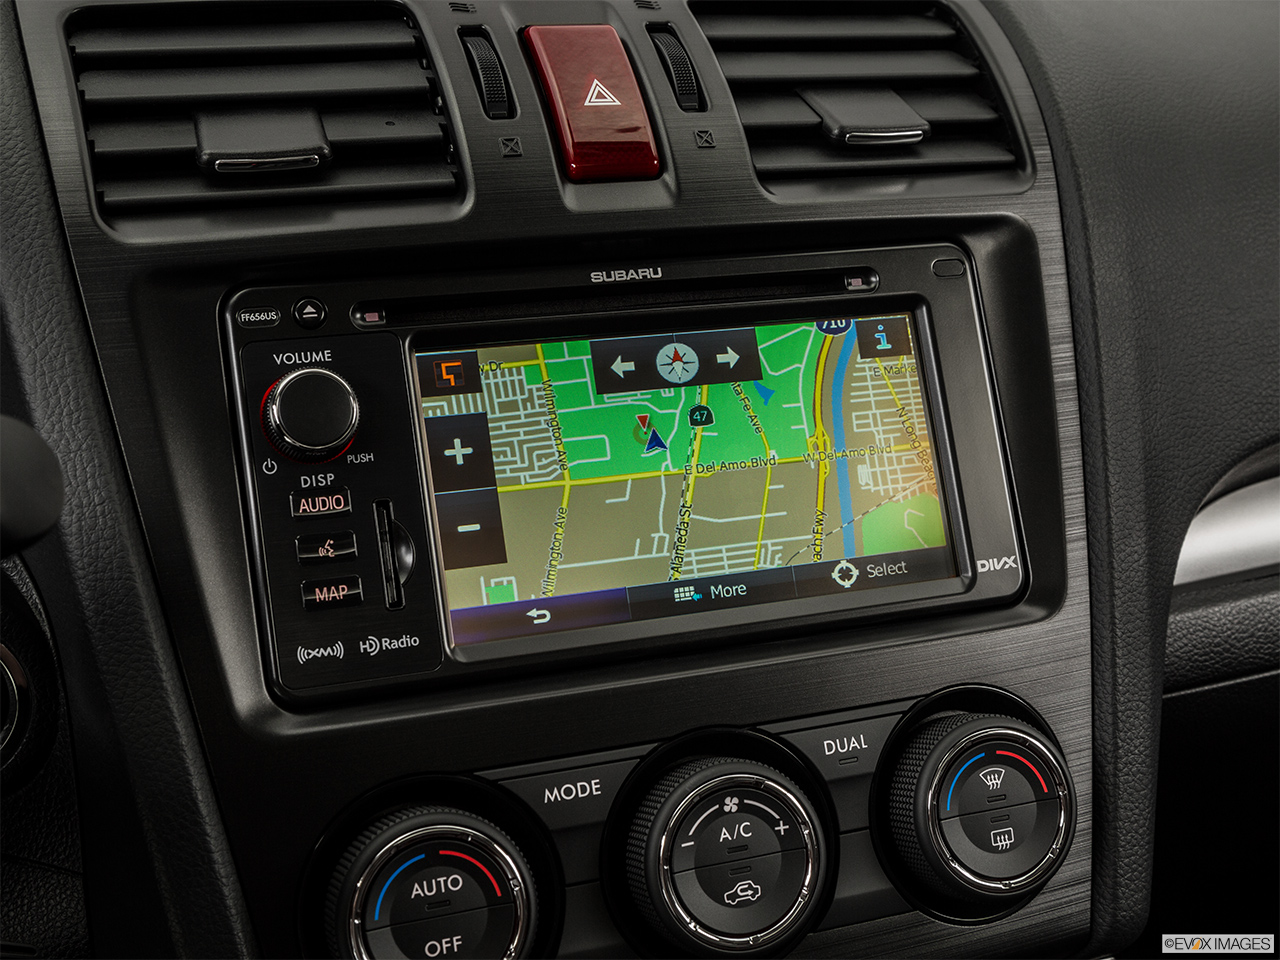 hight resolution of 2015 subaru forester automatic 2 0xt touring driver position view of navigation system